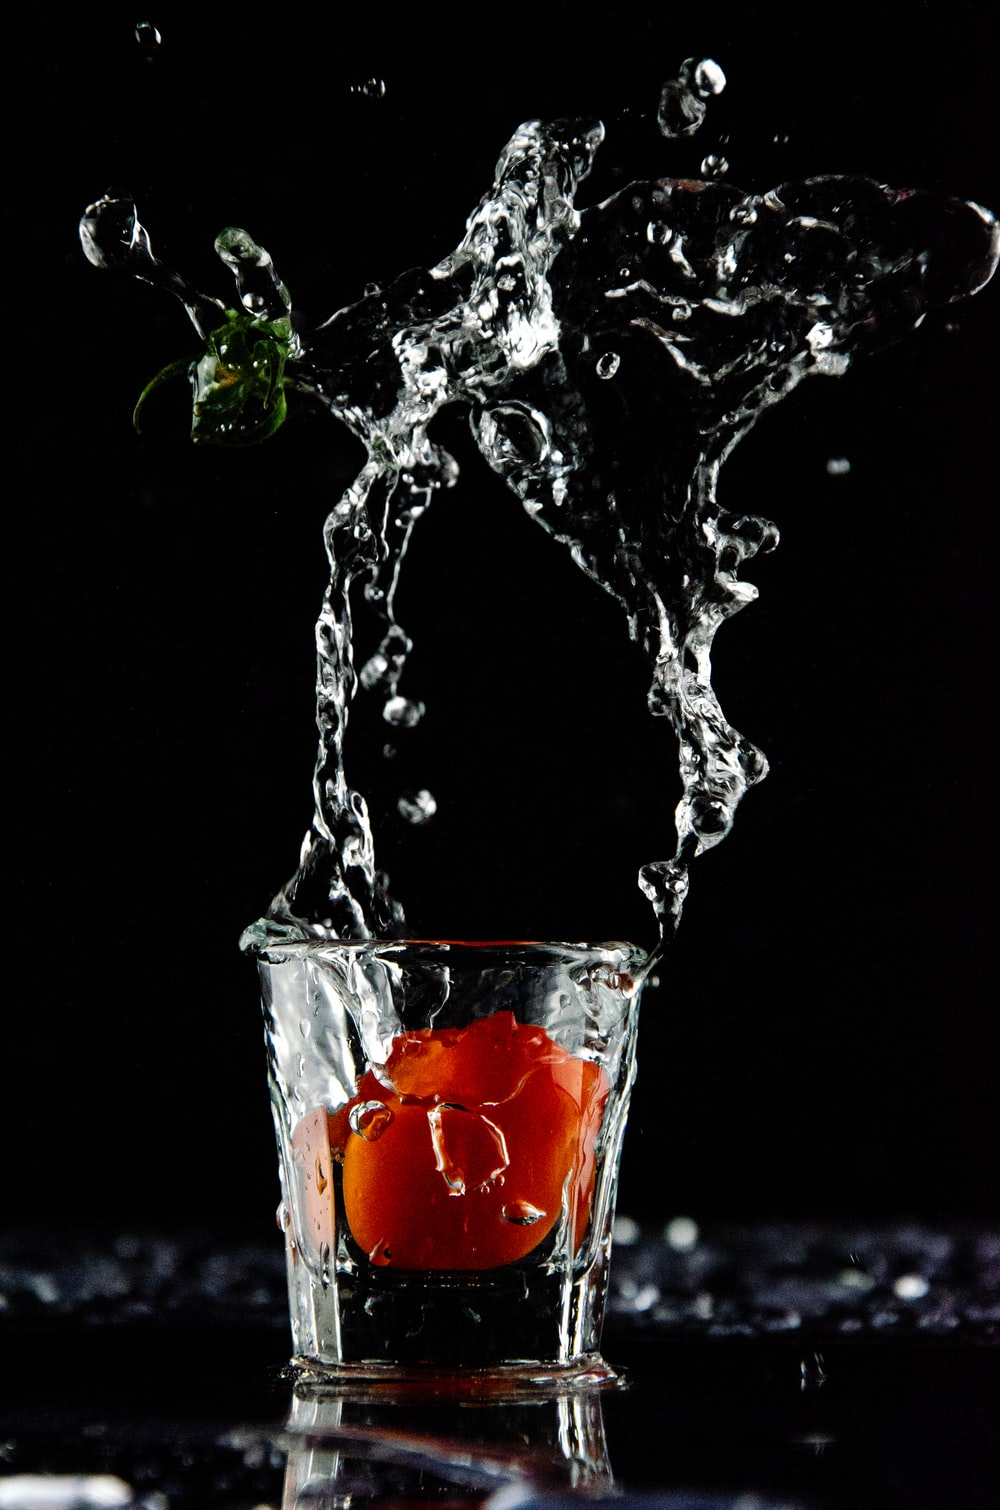 orange fruit dropped on shot glass with clear liquid spills